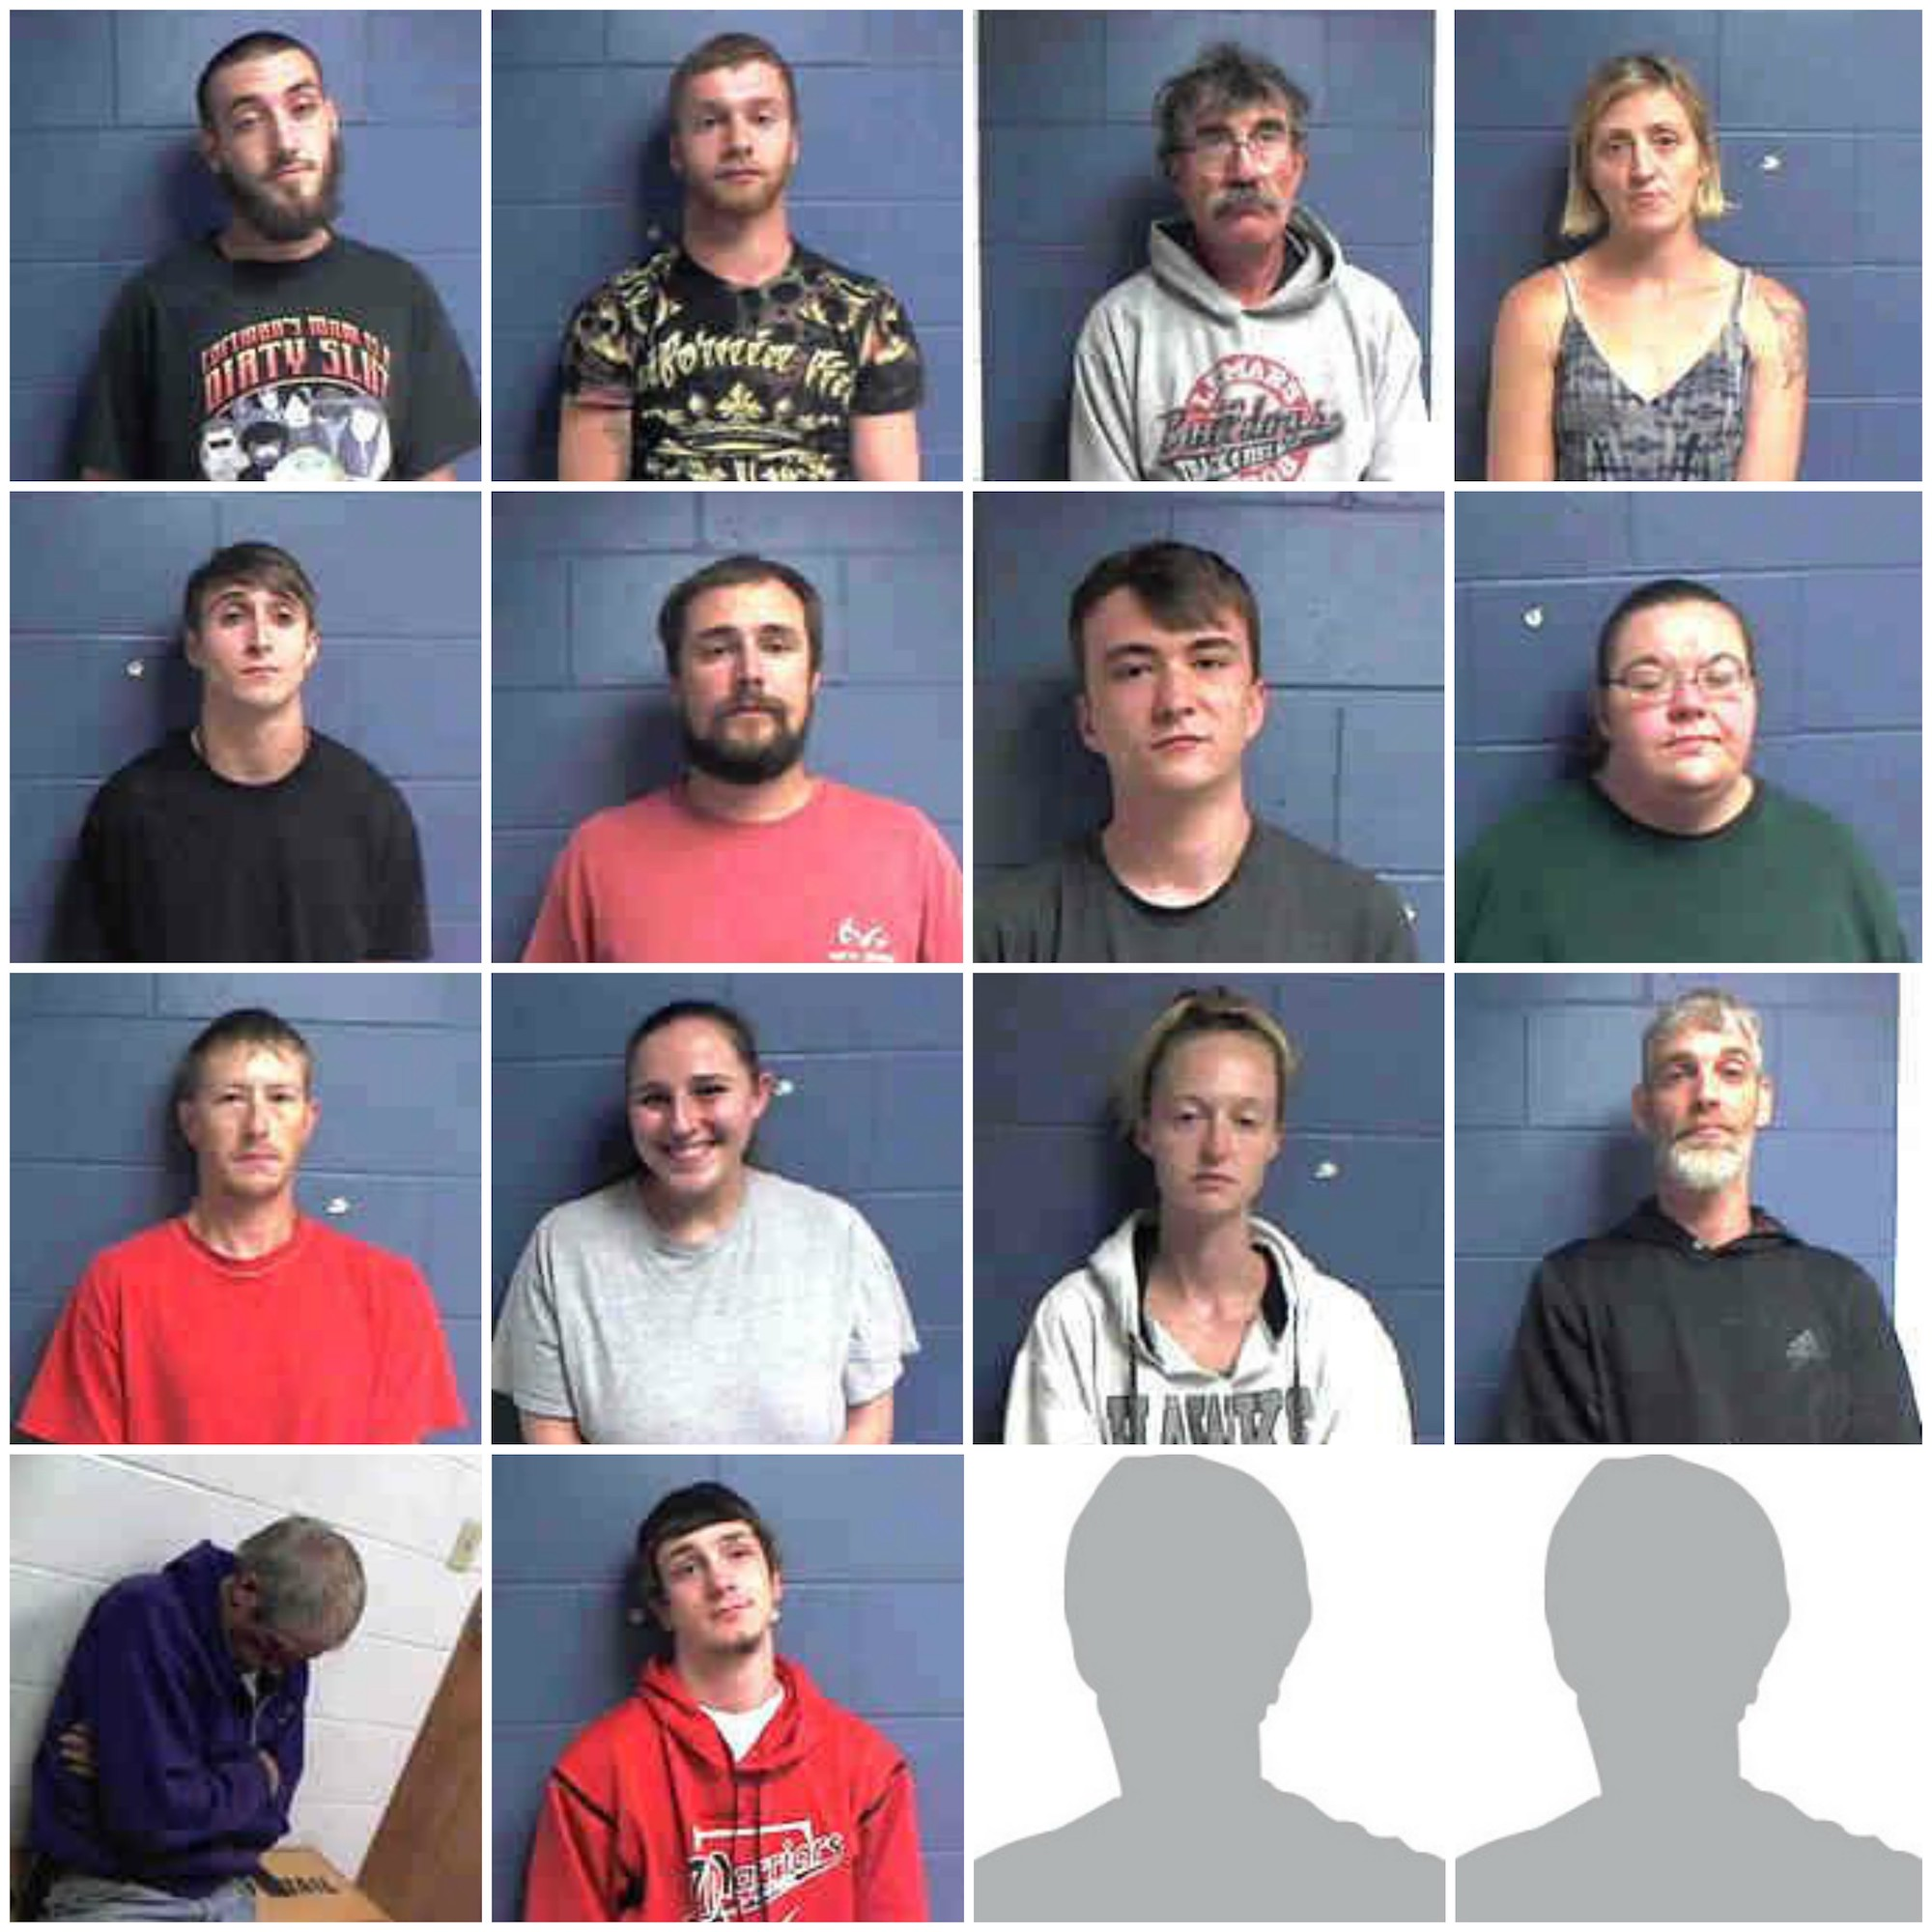 Monona County arrests 16 on possession and distribution of drugs